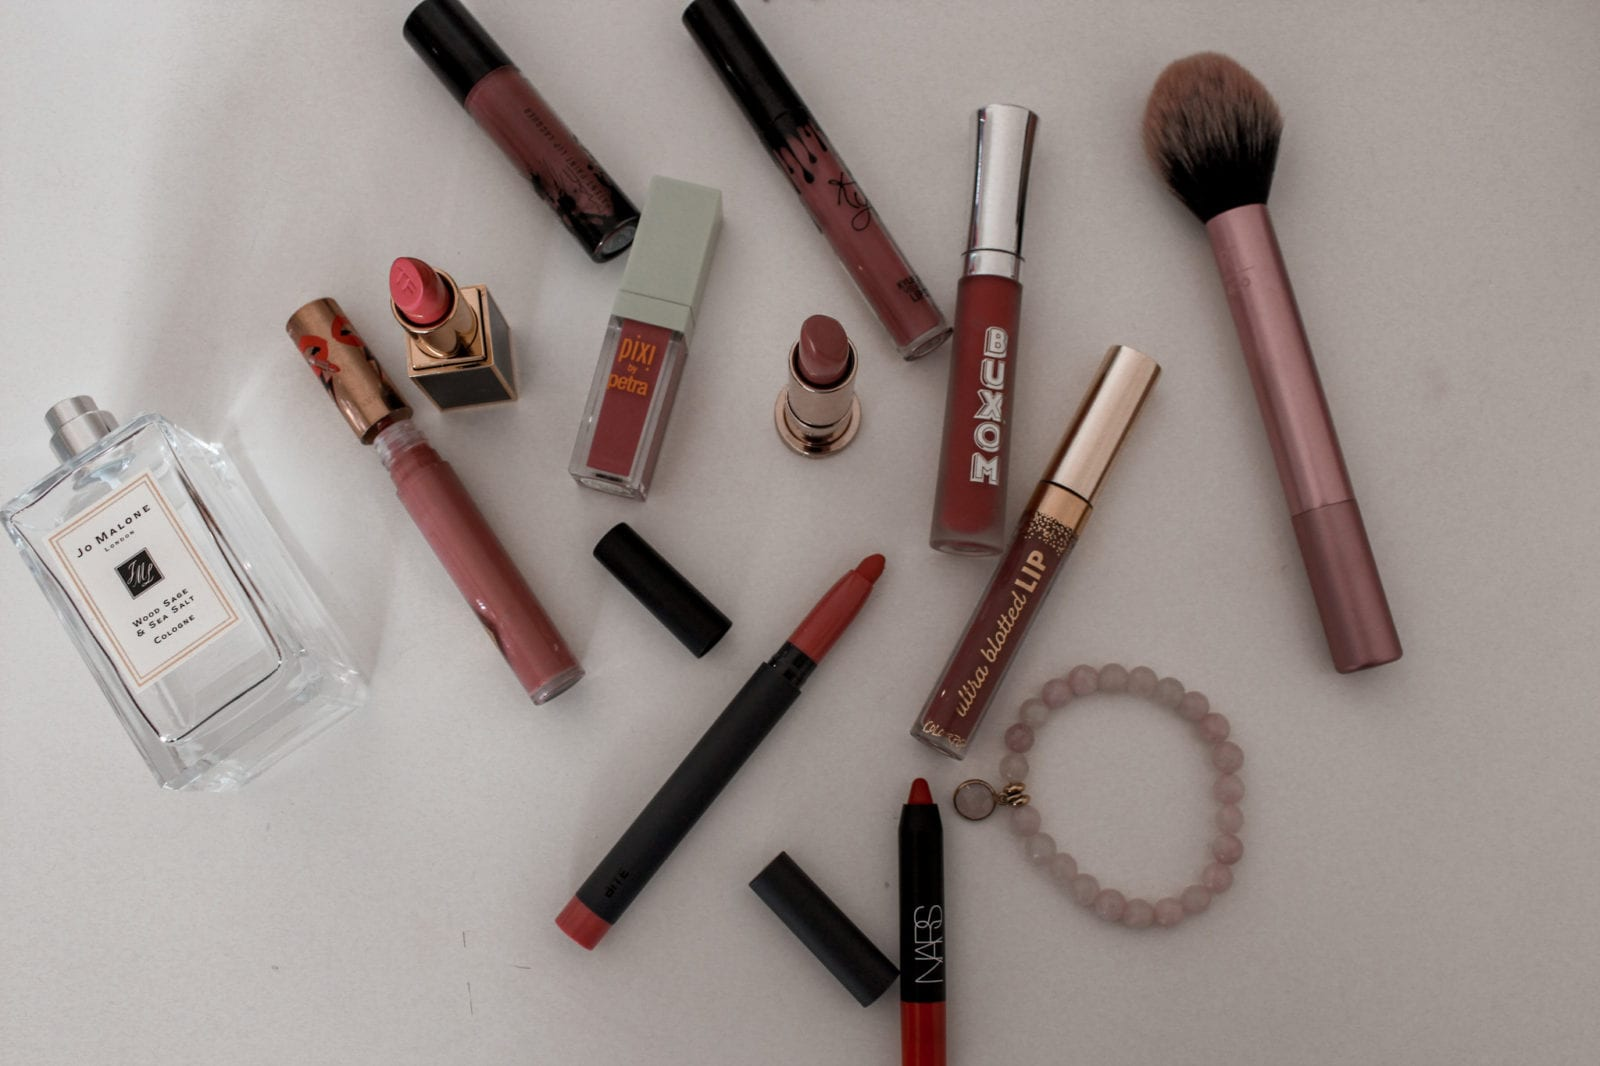 In this image, several of the lip glosses and lipsticks talked about in the post are laying on top of a white surface.